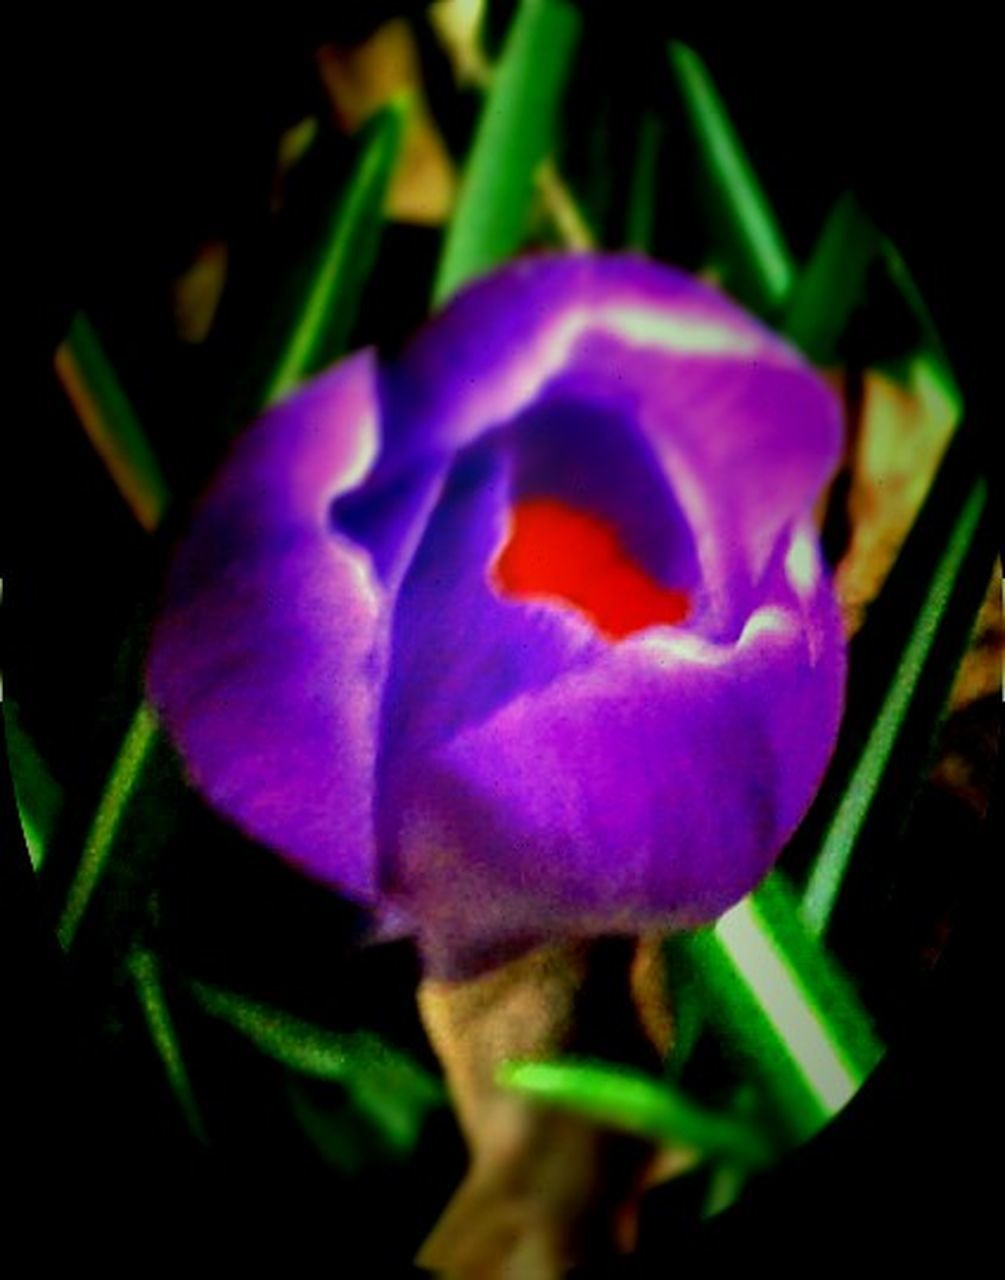 flower, fragility, petal, growth, nature, beauty in nature, purple, plant, no people, freshness, flower head, close-up, outdoors, day, leaf, blooming